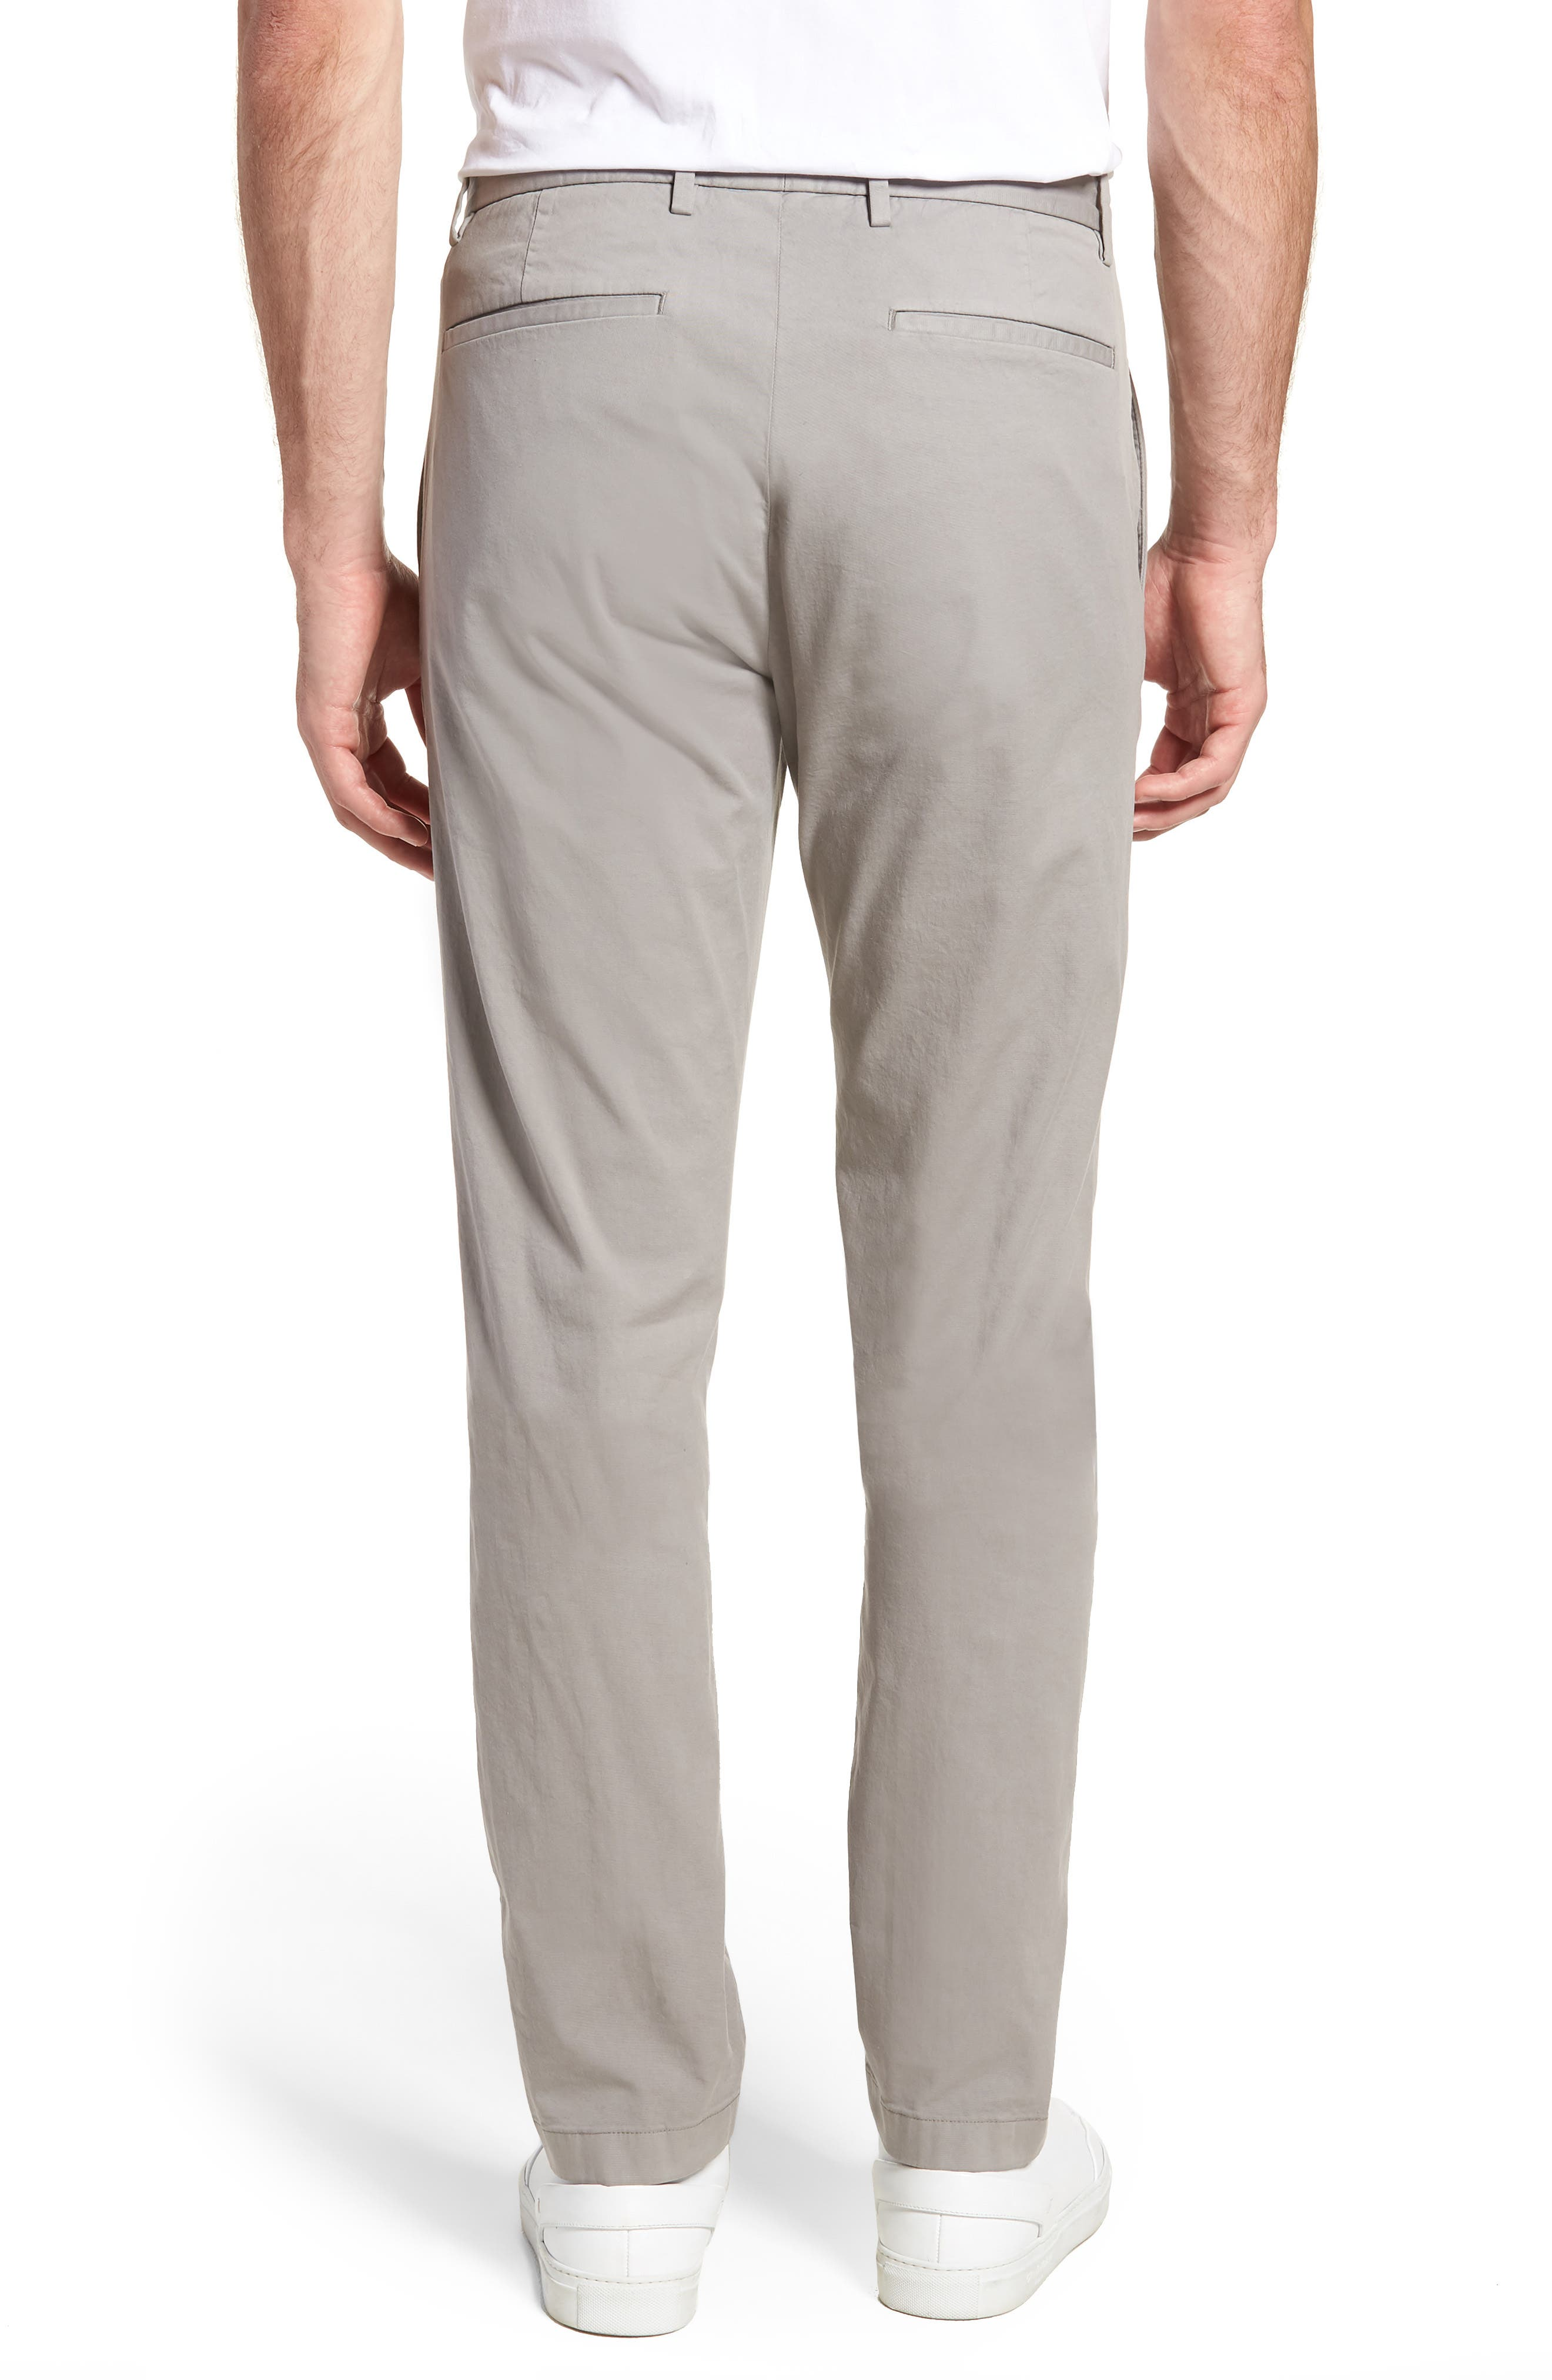 Zaine Patton Flat Front Stretch Solid Cotton Pants,                             Alternate thumbnail 2, color,                             DIM